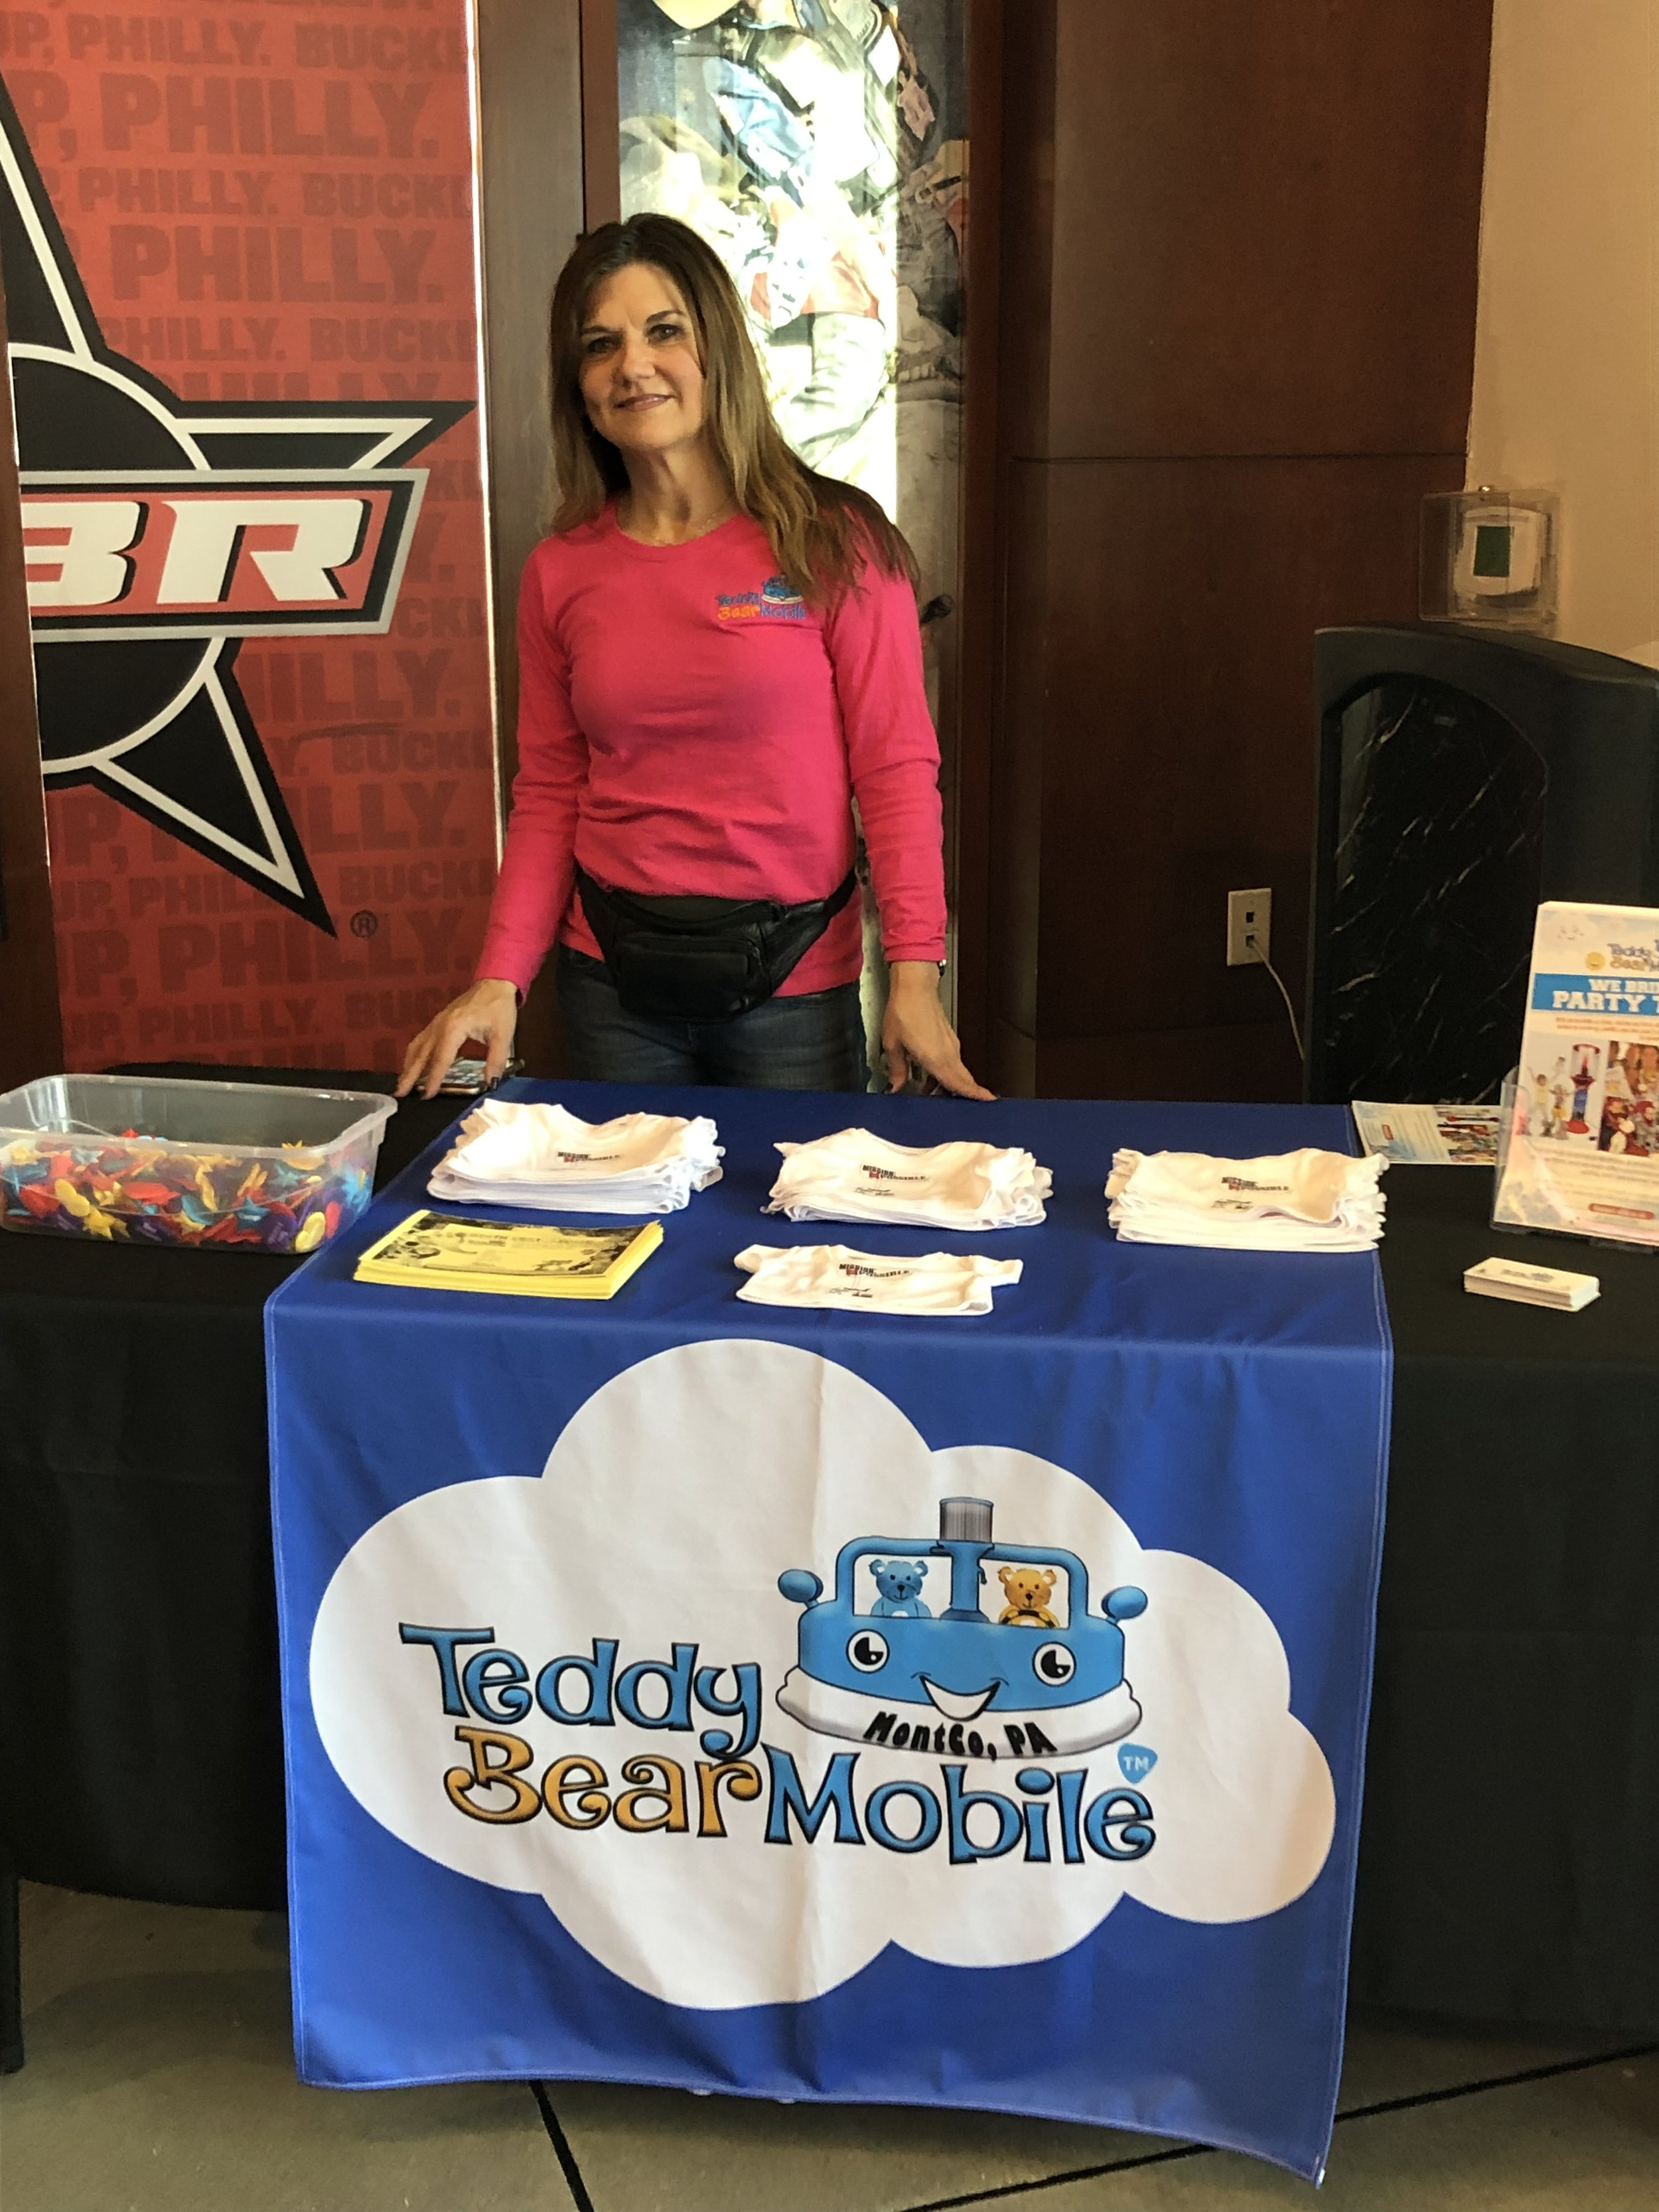 Tamara from Teddy Bear Mobile, Montco, PA